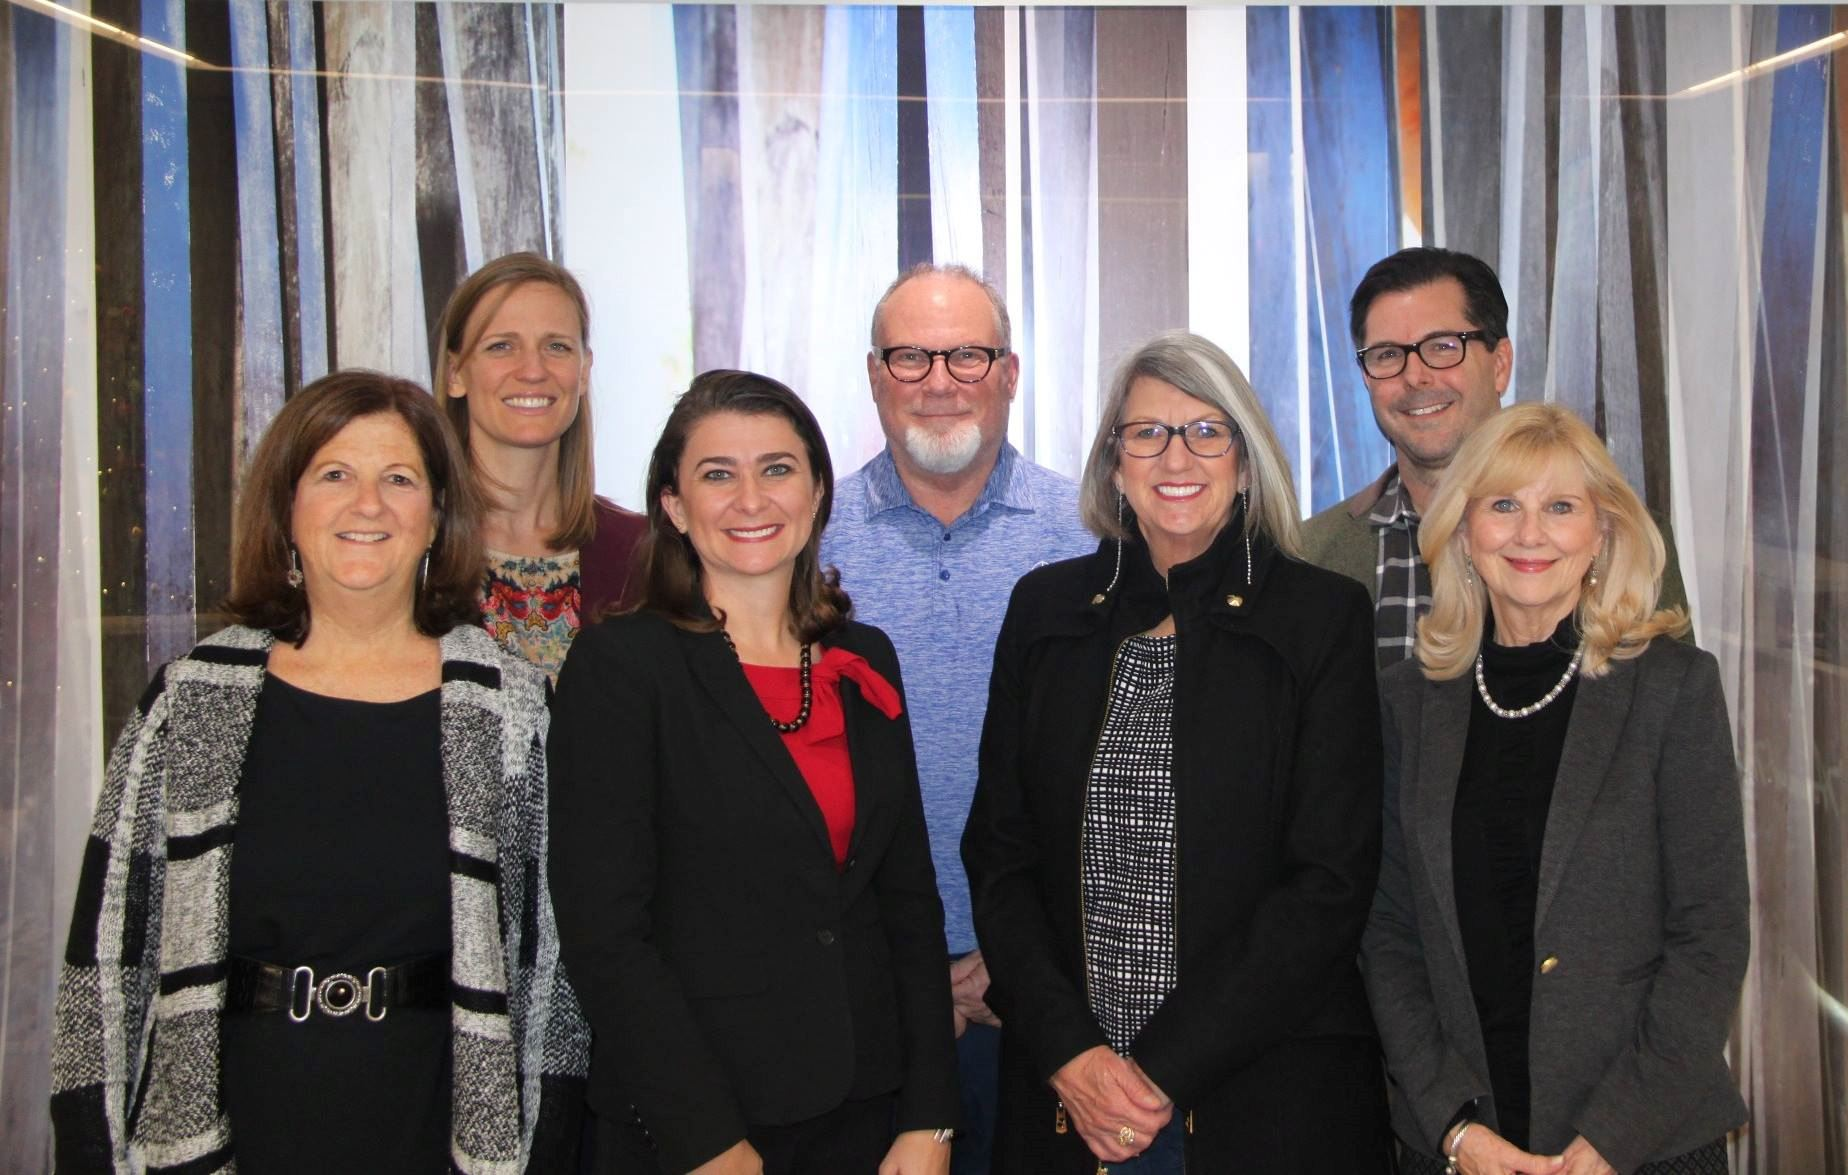 The Woodlands Arts Council Board members